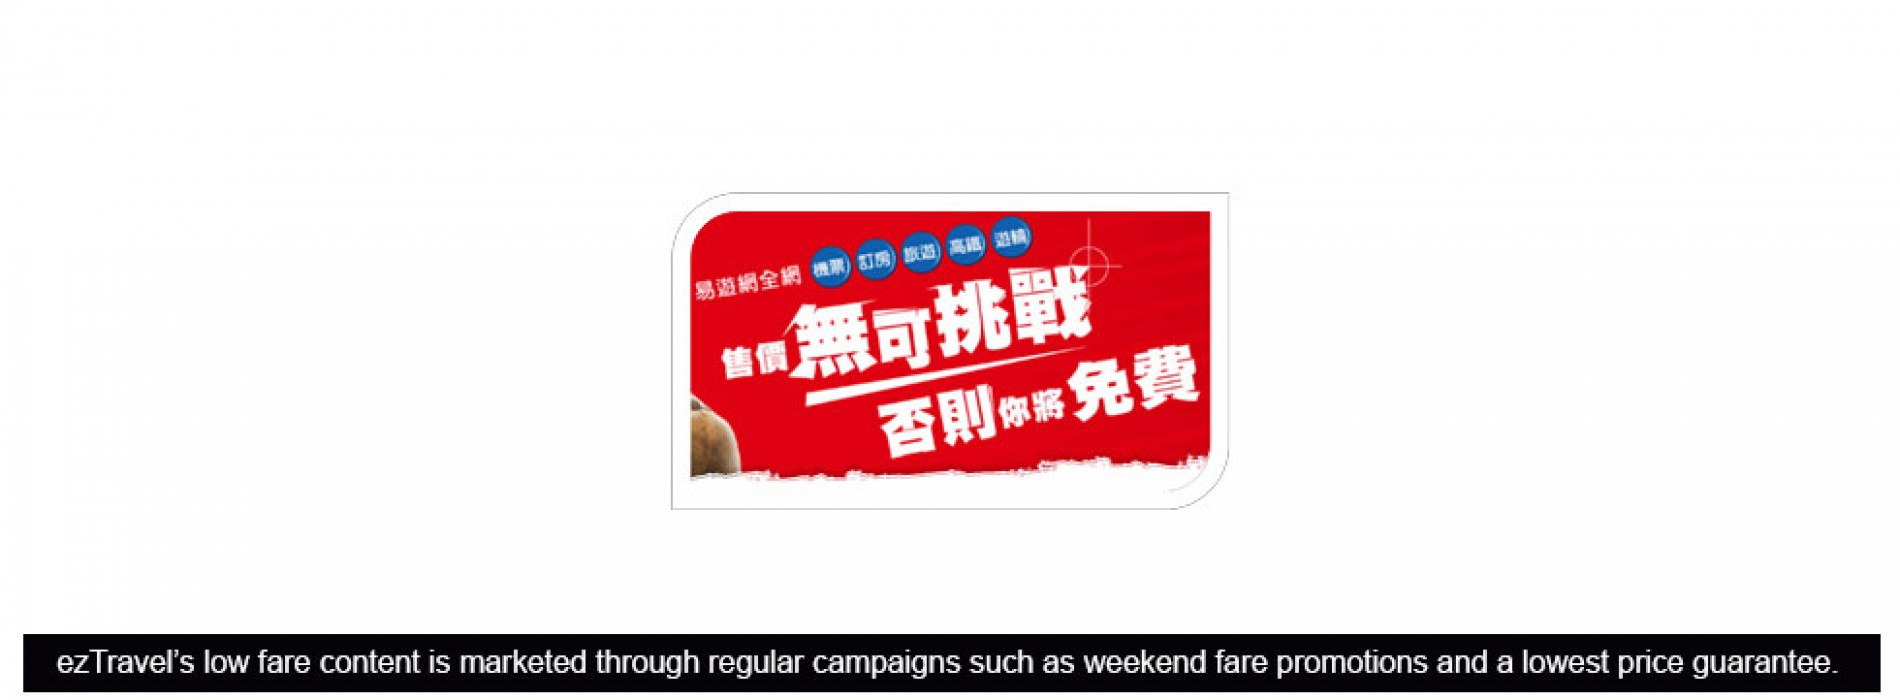 Taiwan's ezTravel commits Sabre technologies to make low fare shopping easier